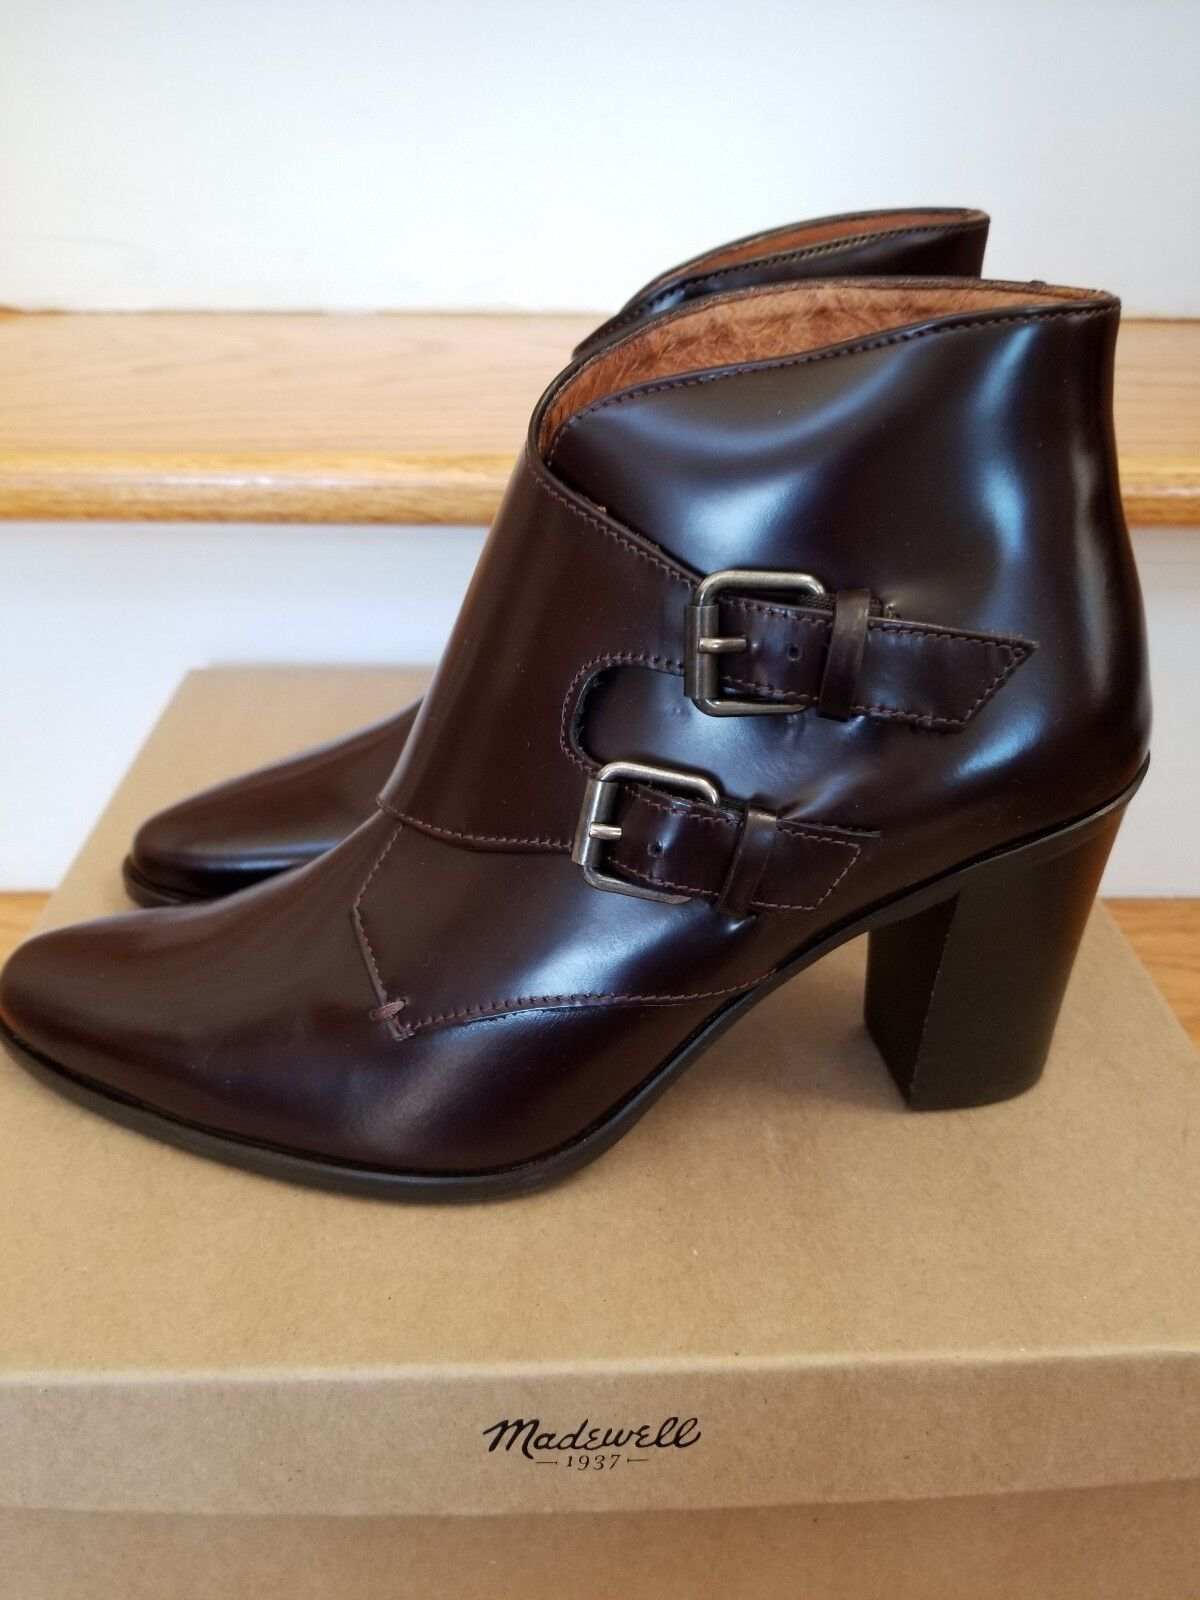 NEW IN BOX MADEWELL MILO MILO MILO SMOOTH CALF MONK STRAP BOOT BURGUNDY SIZE 8.5 272736